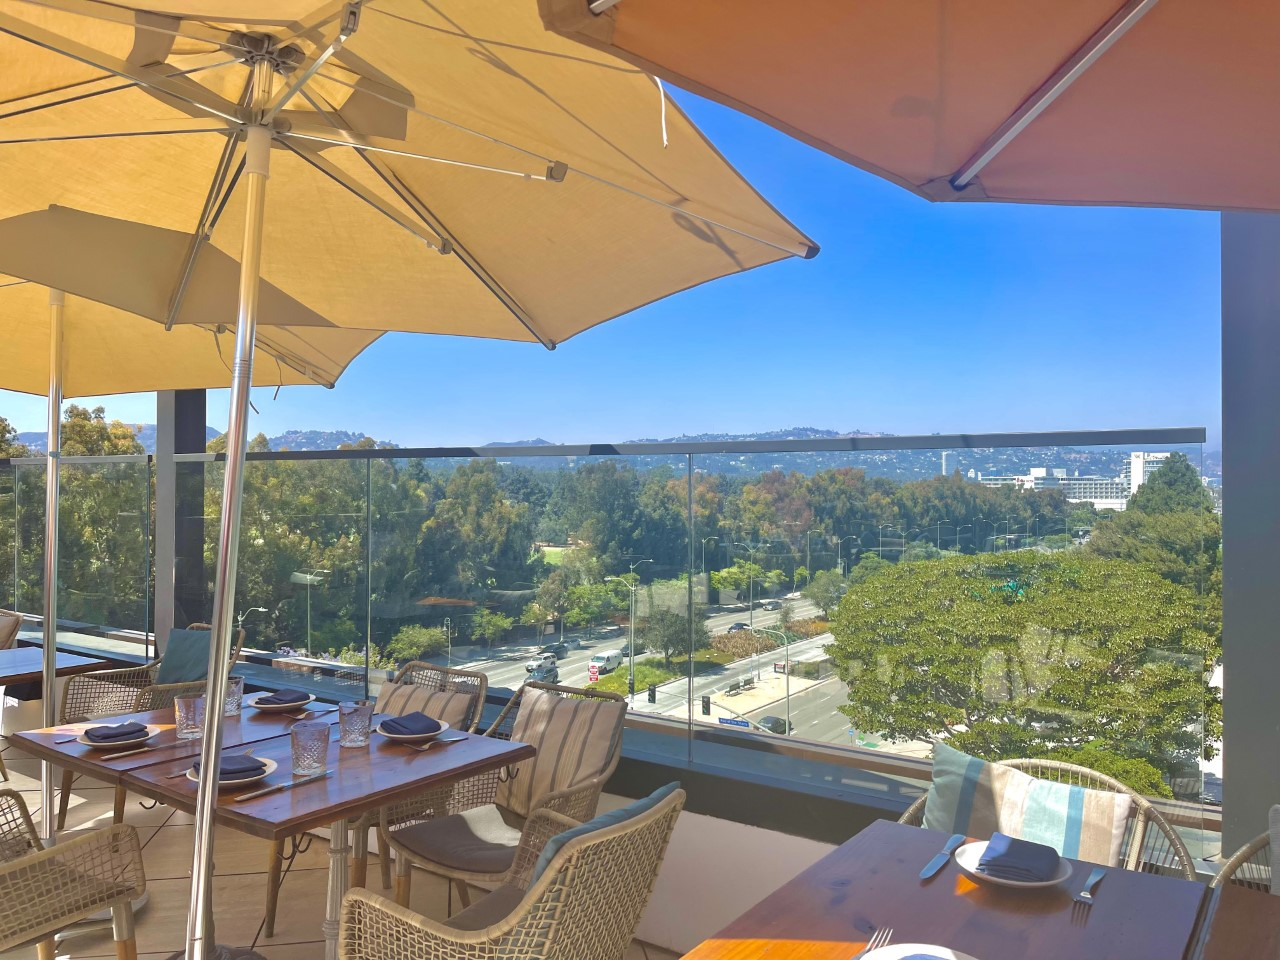 Rooftop restaurant in LA during your perfect day!